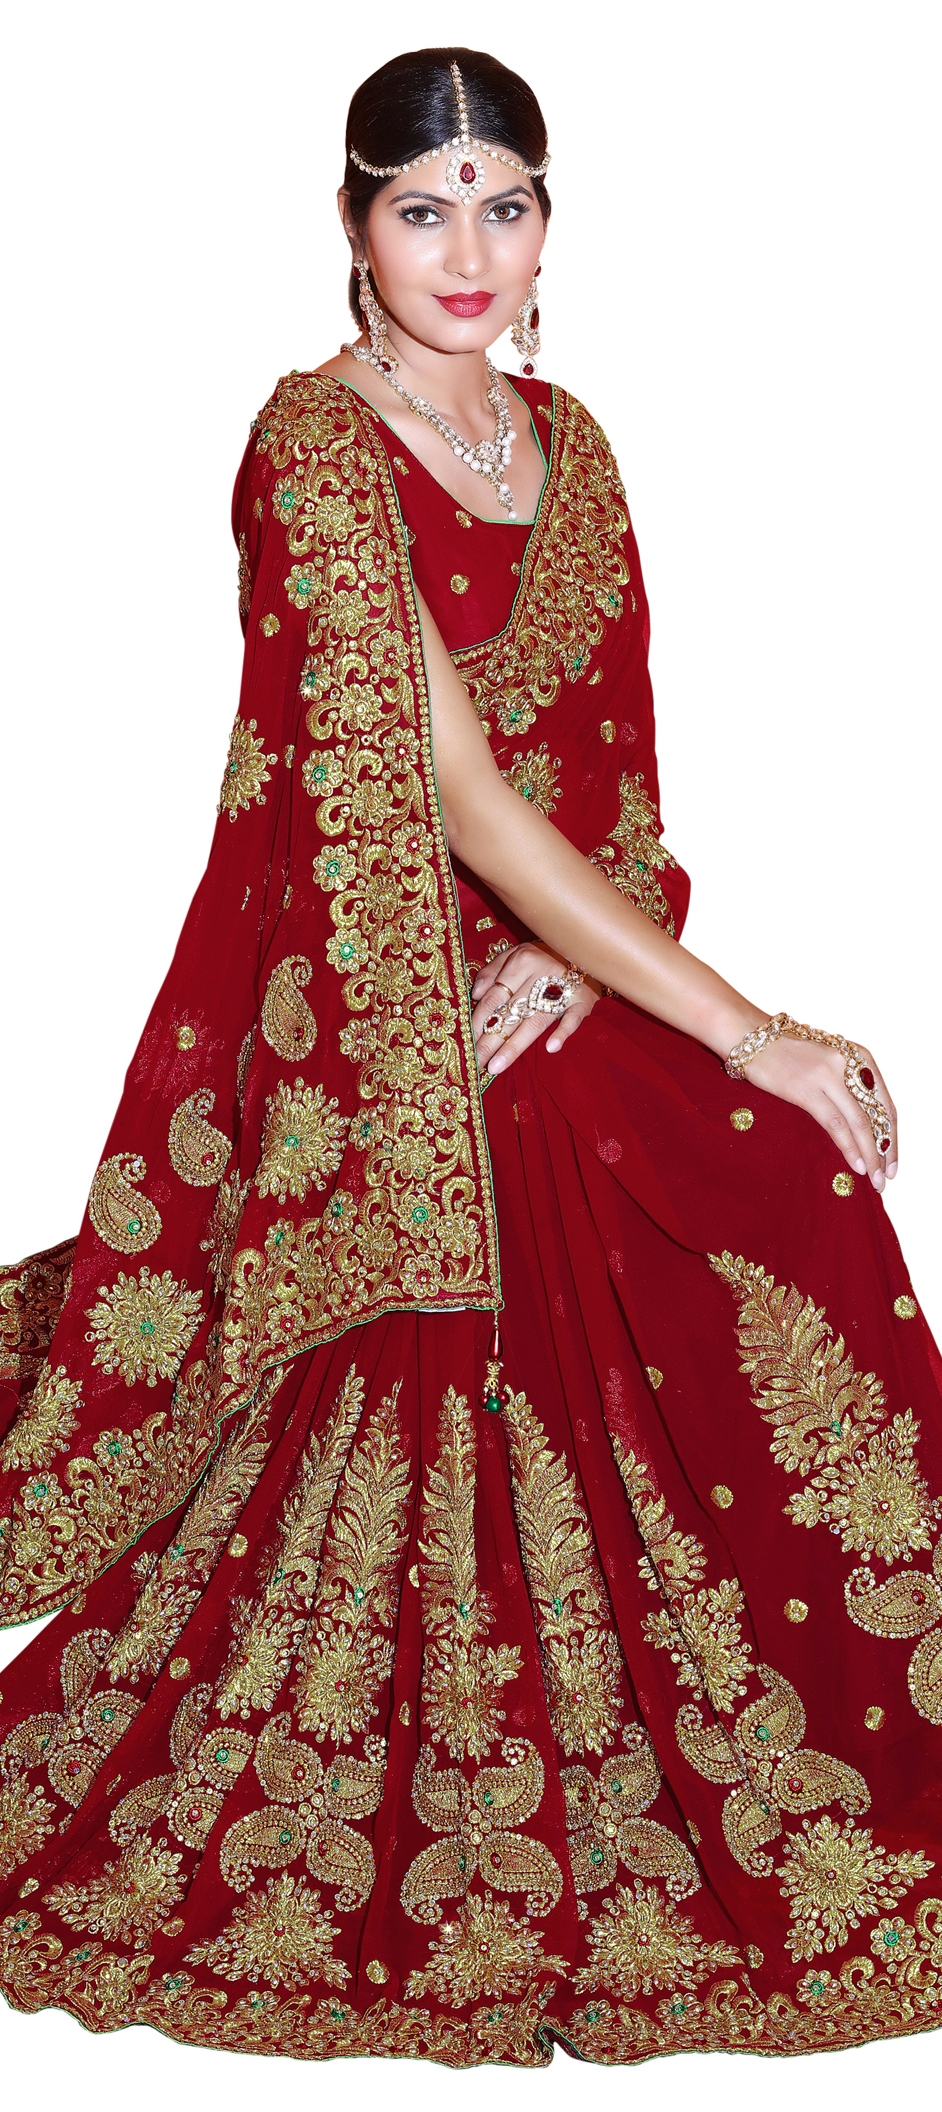 763750: Red and Maroon color family Embroidered Sarees, Party Wear ...